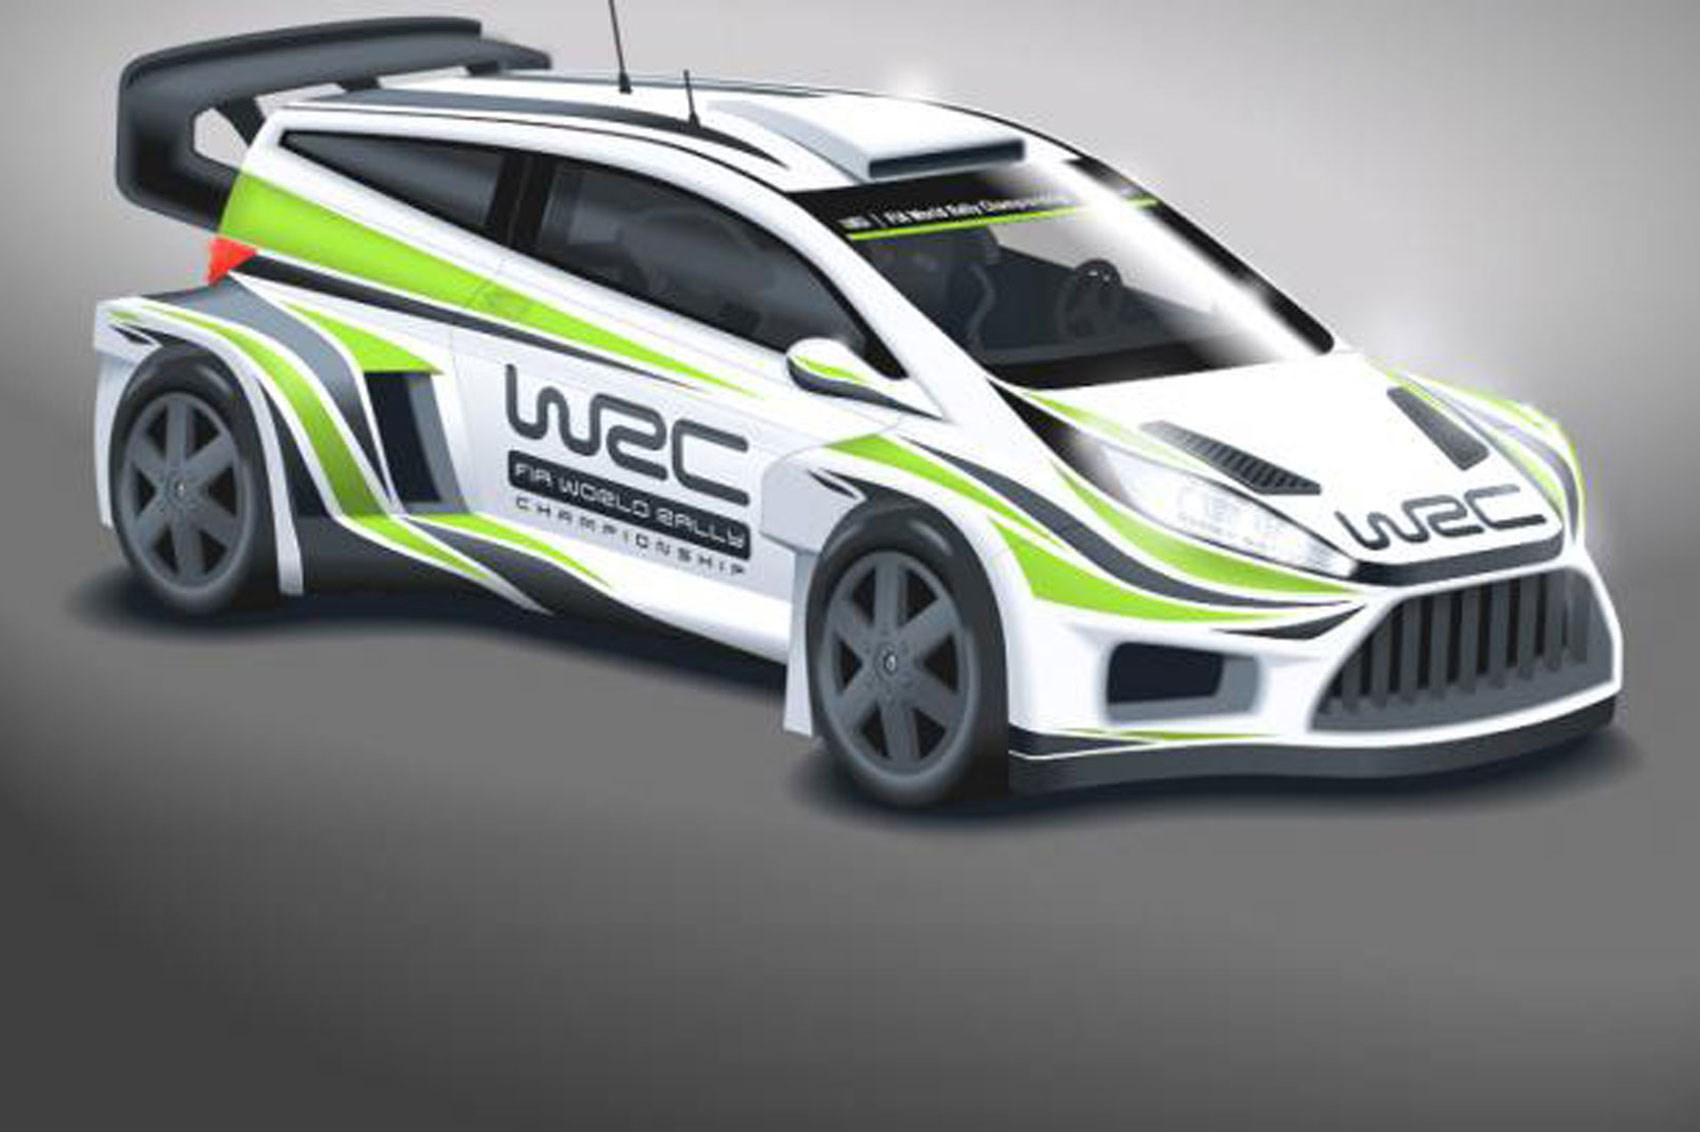 Ultrablogus  Winning Wild New Look For Wrc Cars In  By Car Magazine With Entrancing Wrc Cars Will Get Wider Bodies Bigger Wings And More Power For  With Extraordinary Volvo S Interior Also  Dodge Neon Interior In Addition  Kia Spectra Interior And  Fj Cruiser Interior As Well As  Chrysler C Interior Additionally Lincoln Mark Lt Interior From Carmagazinecouk With Ultrablogus  Entrancing Wild New Look For Wrc Cars In  By Car Magazine With Extraordinary Wrc Cars Will Get Wider Bodies Bigger Wings And More Power For  And Winning Volvo S Interior Also  Dodge Neon Interior In Addition  Kia Spectra Interior From Carmagazinecouk